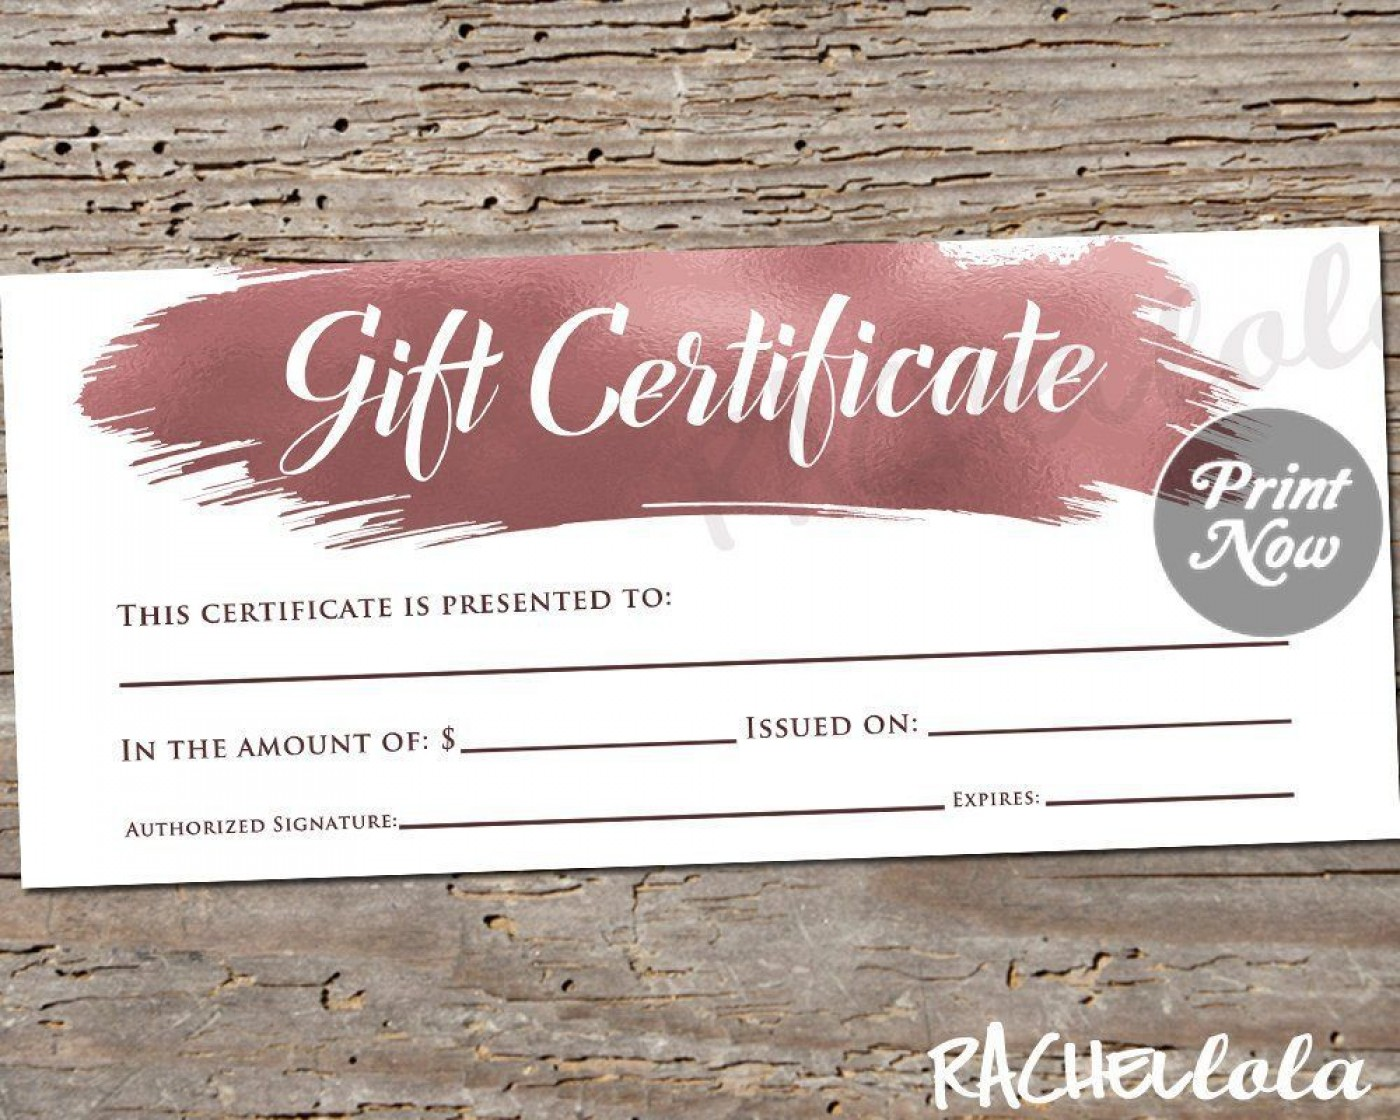 003 Stunning Salon Gift Certificate Template Picture 1400